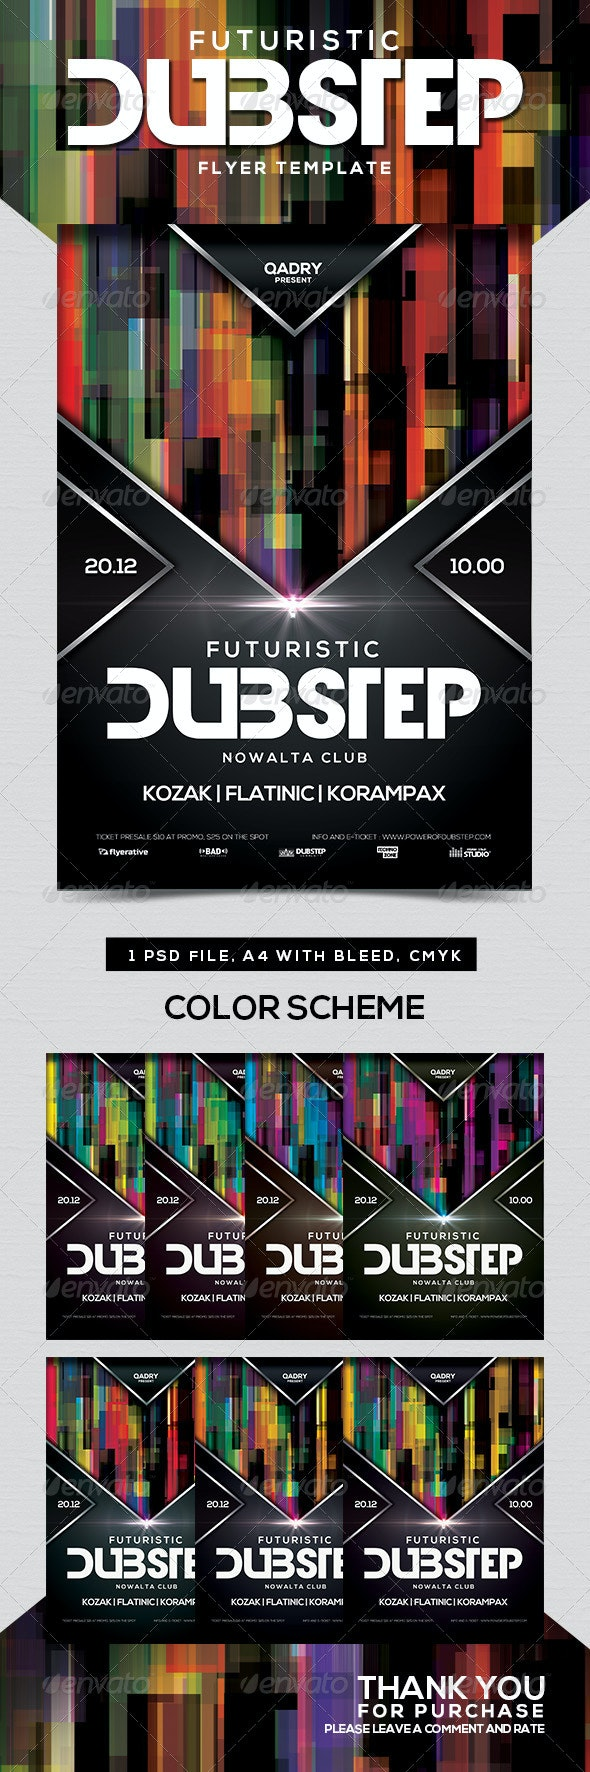 Futuristic Dubstep Flyer Template - Clubs & Parties Events